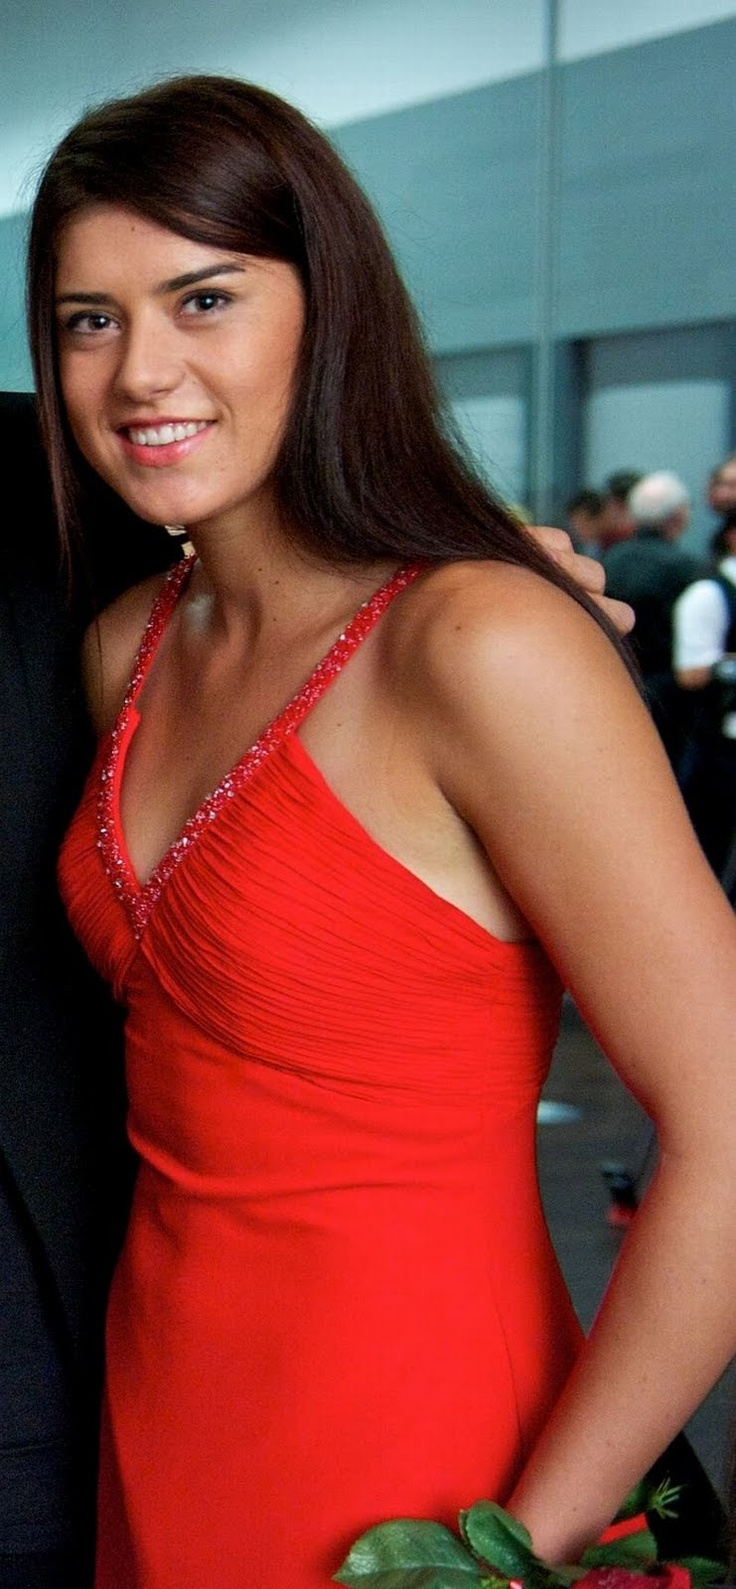 Sorana Cirstea | Tennis | Pinterest | Tennis and Red